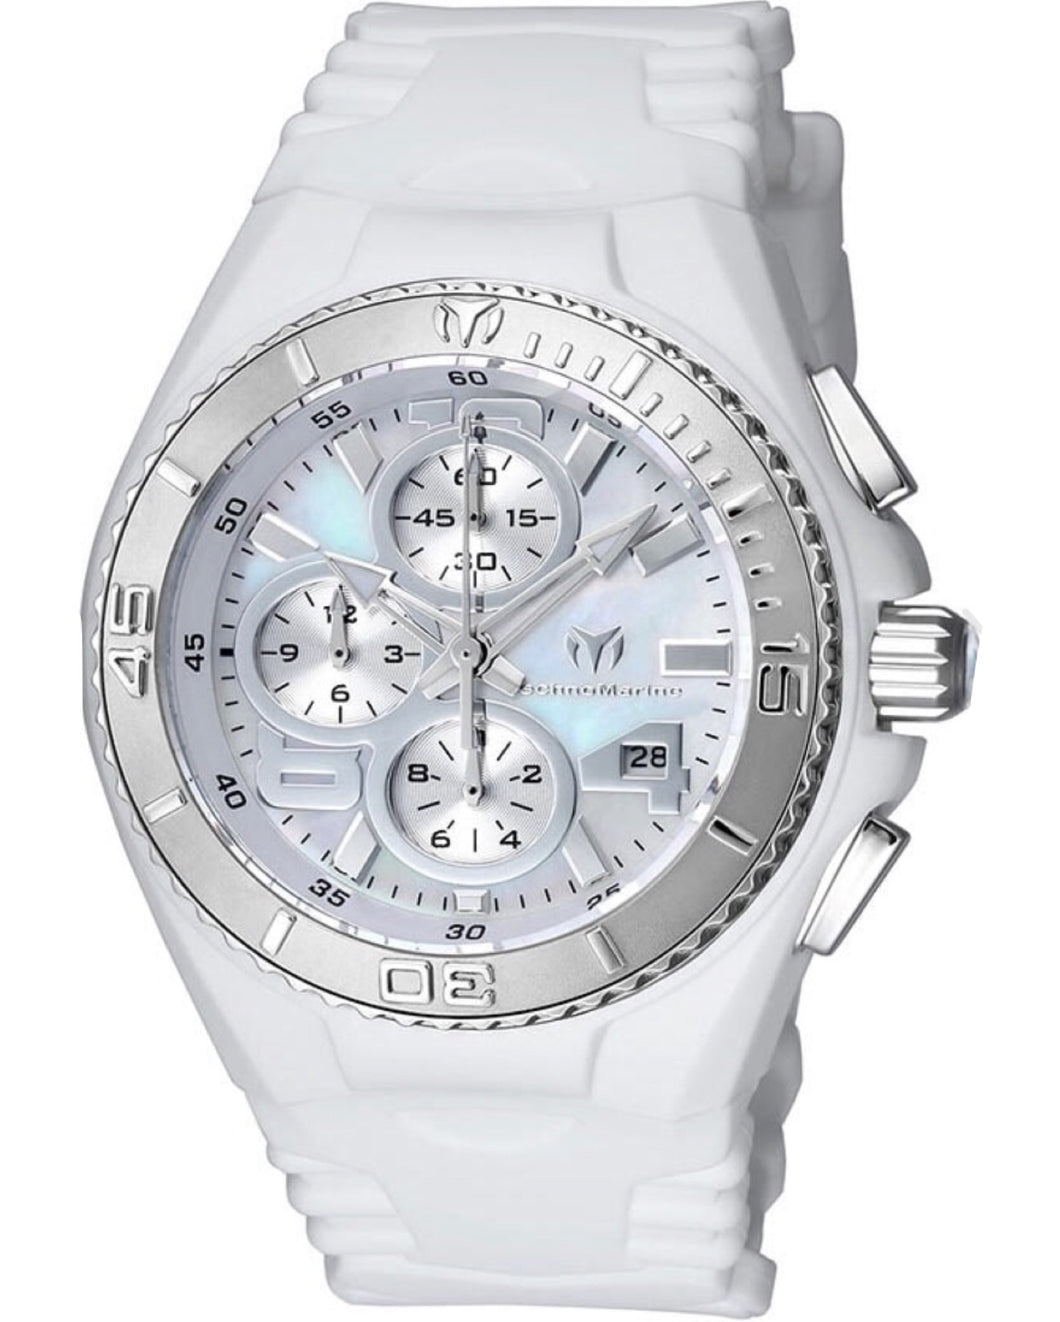 TECHNOMARINE CRUISE JELLYFISH 40MM WATCH WITH WHITE DIAL OS60 QUARTZ - MODEL 115259 - Boutique Watches & More